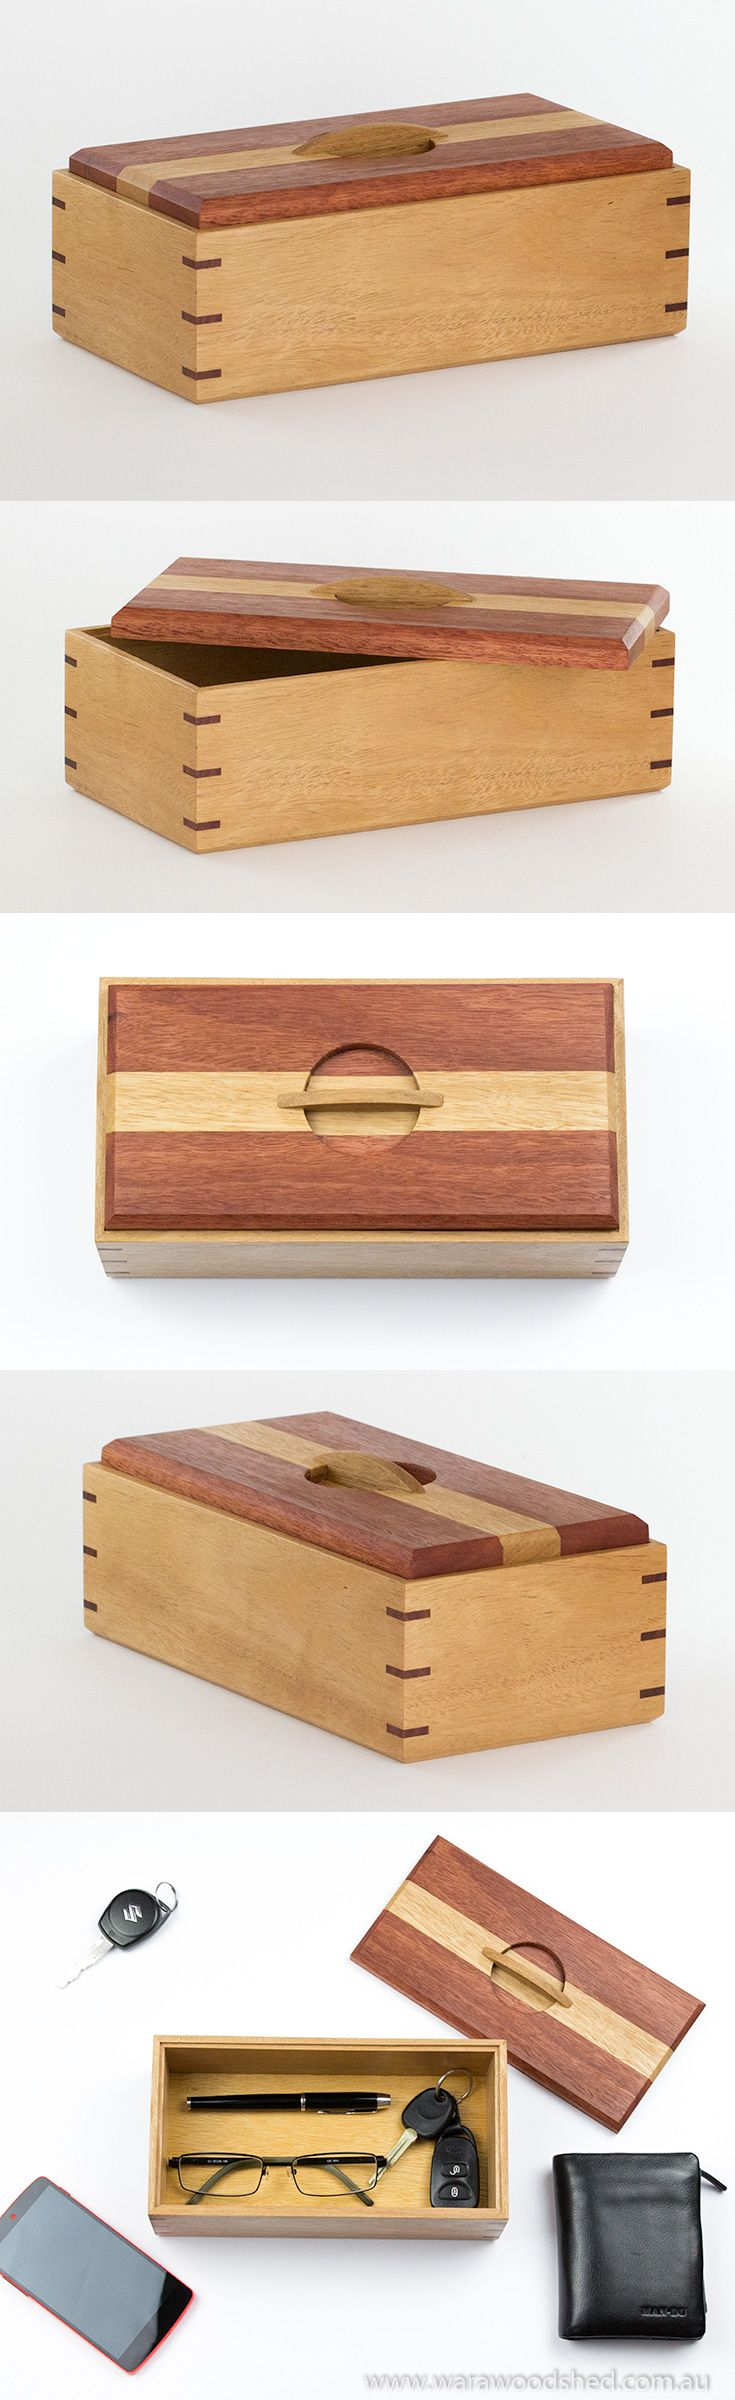 A wooden keepsake box made from Australian timbers